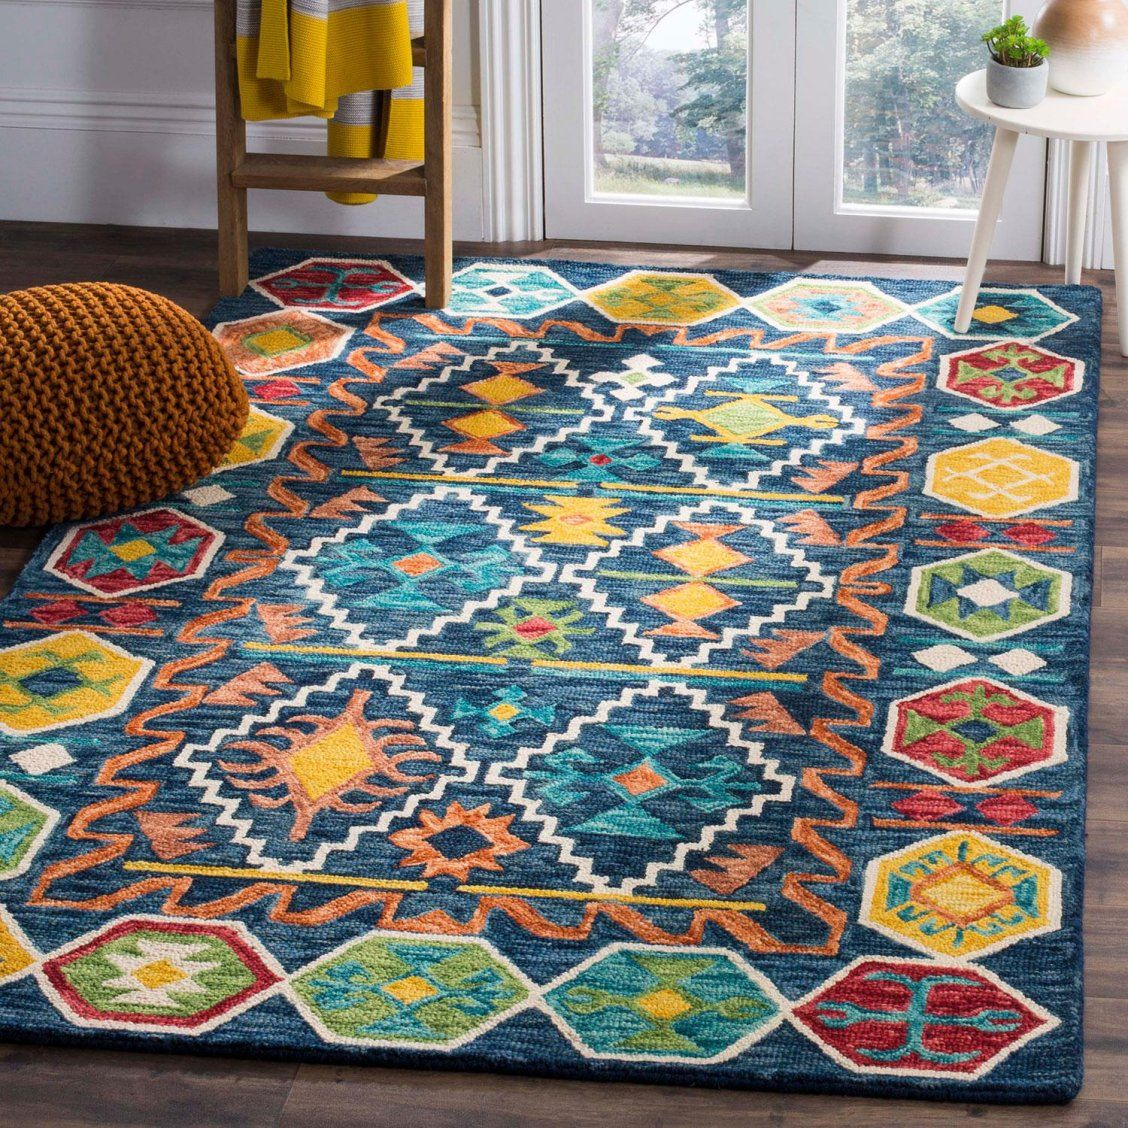 Add A Splash Of Personality To Any Room In Your Home With This Colorful Area Rug From The Aspen Collection By Safavieh Southwestern Area Rugs Wool Rug Gold Rug